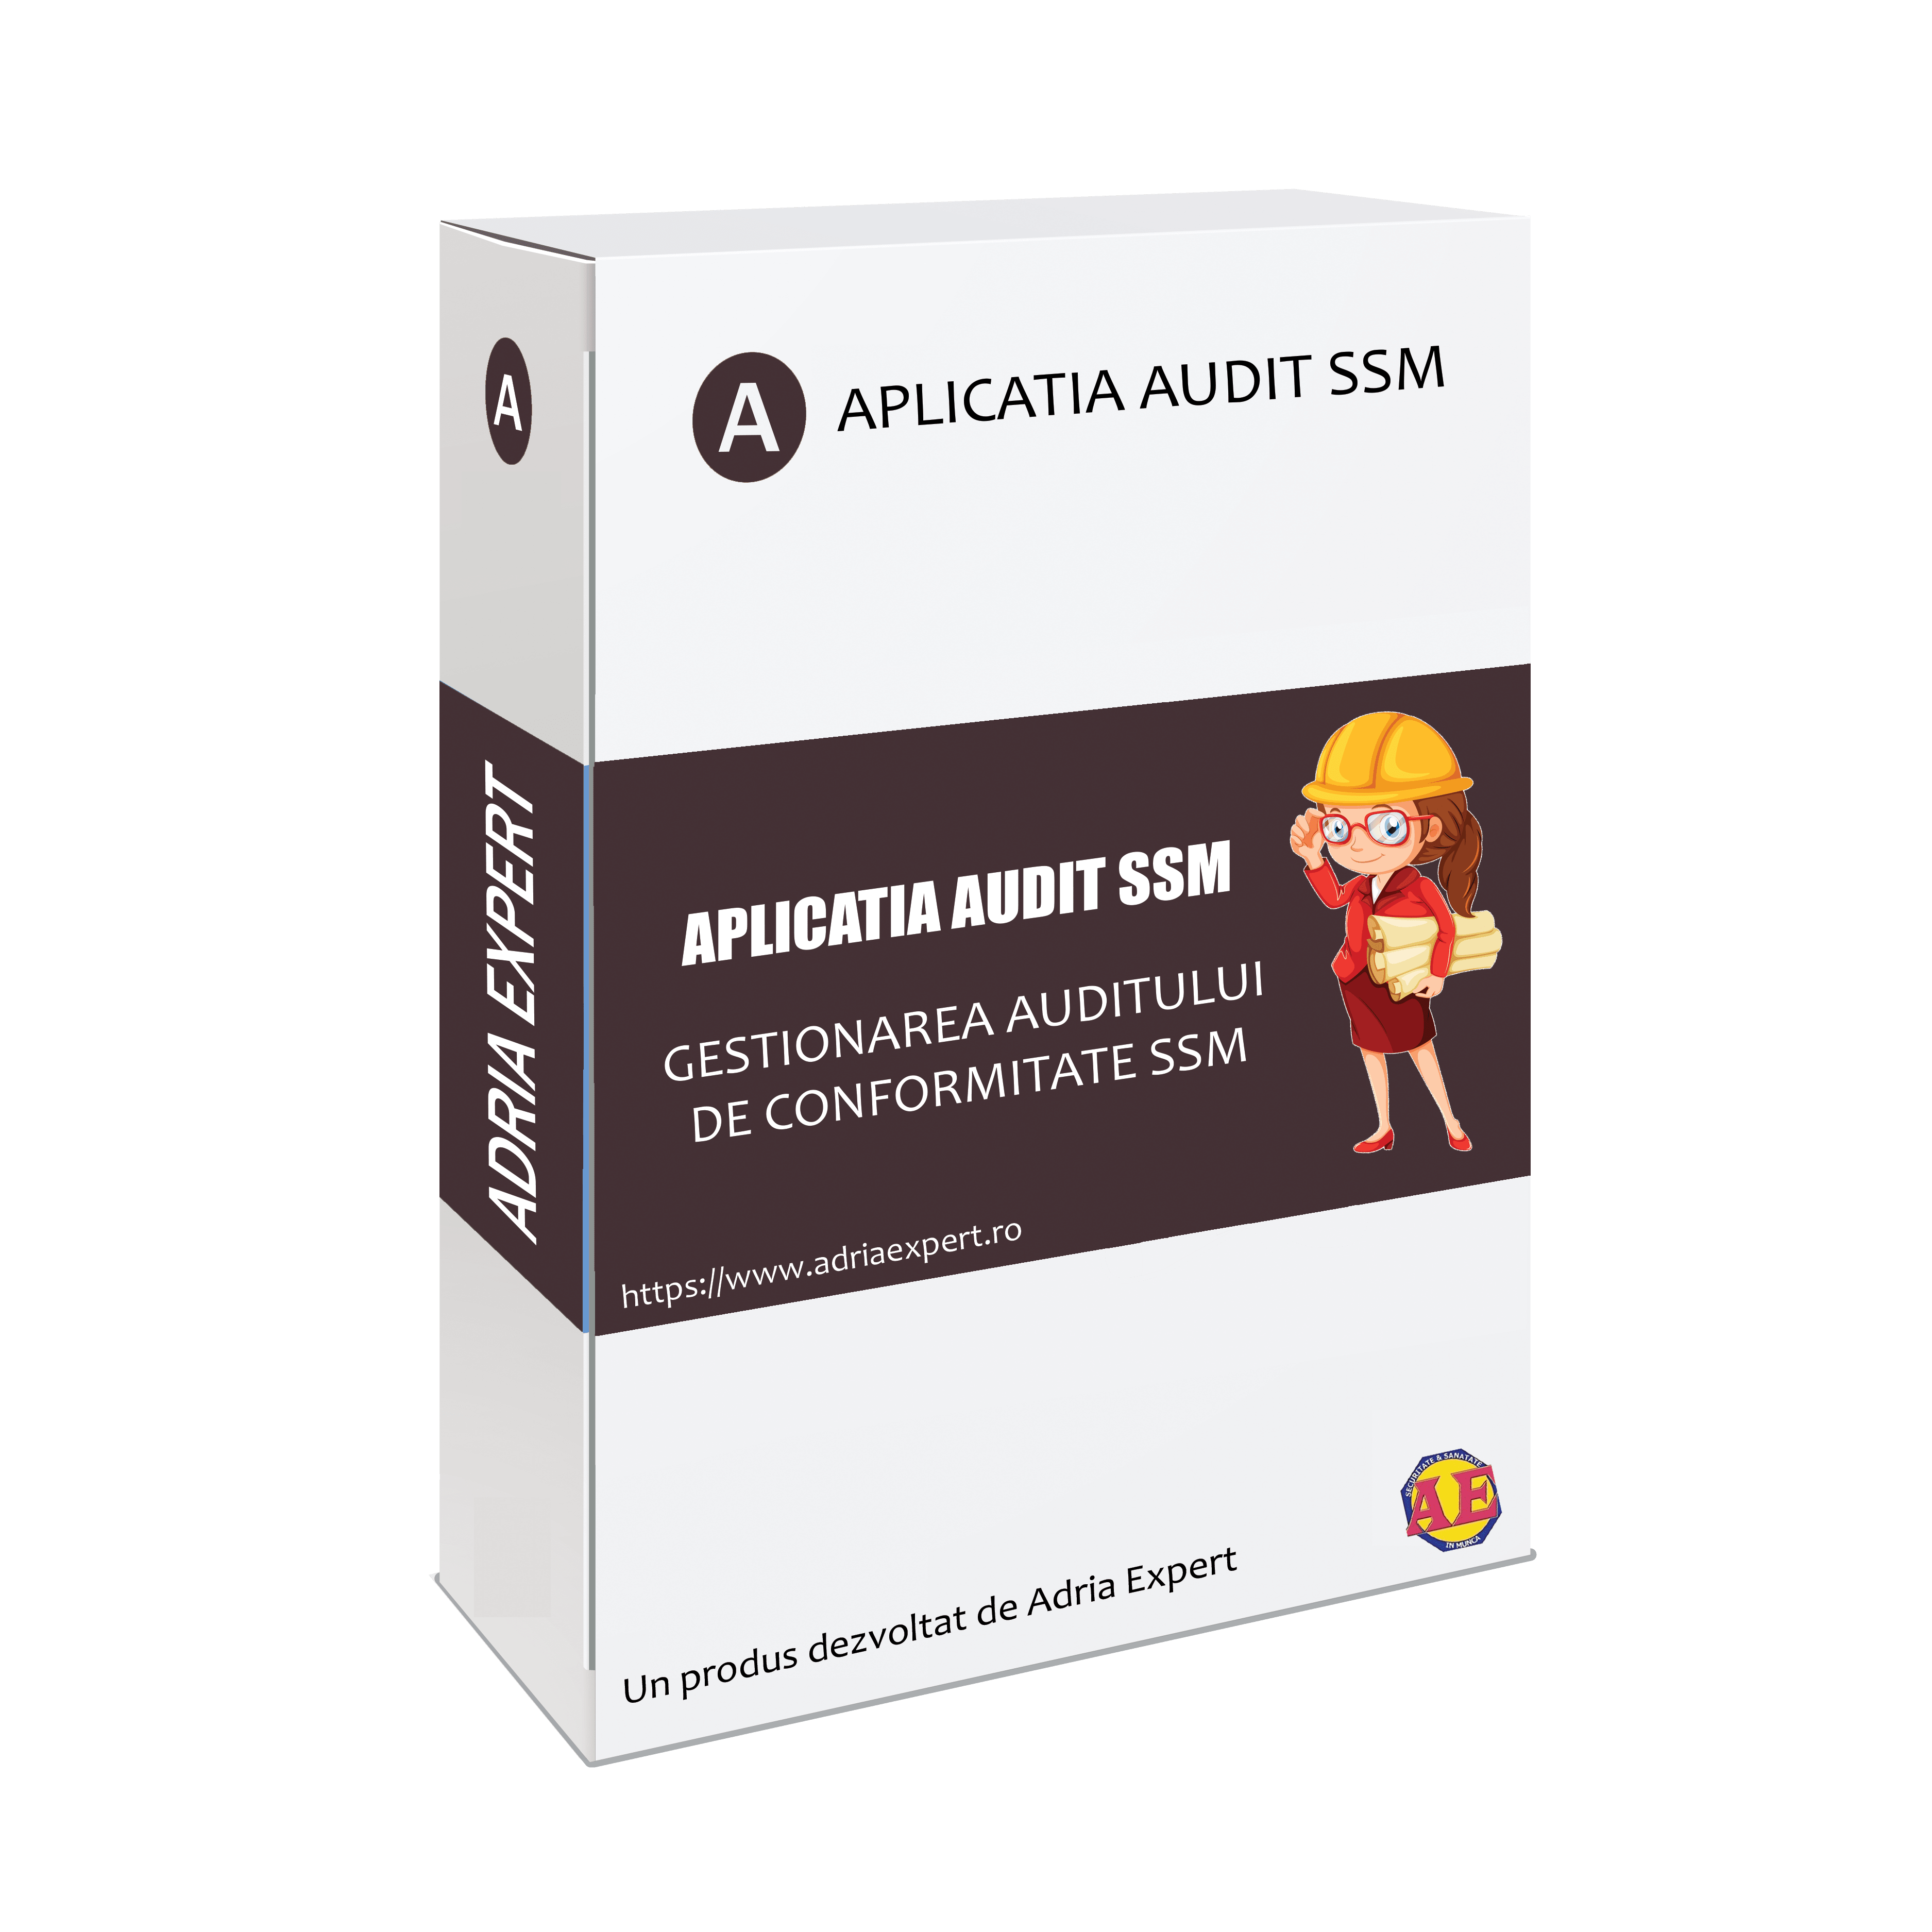 Aplicatia AUDIT SSM